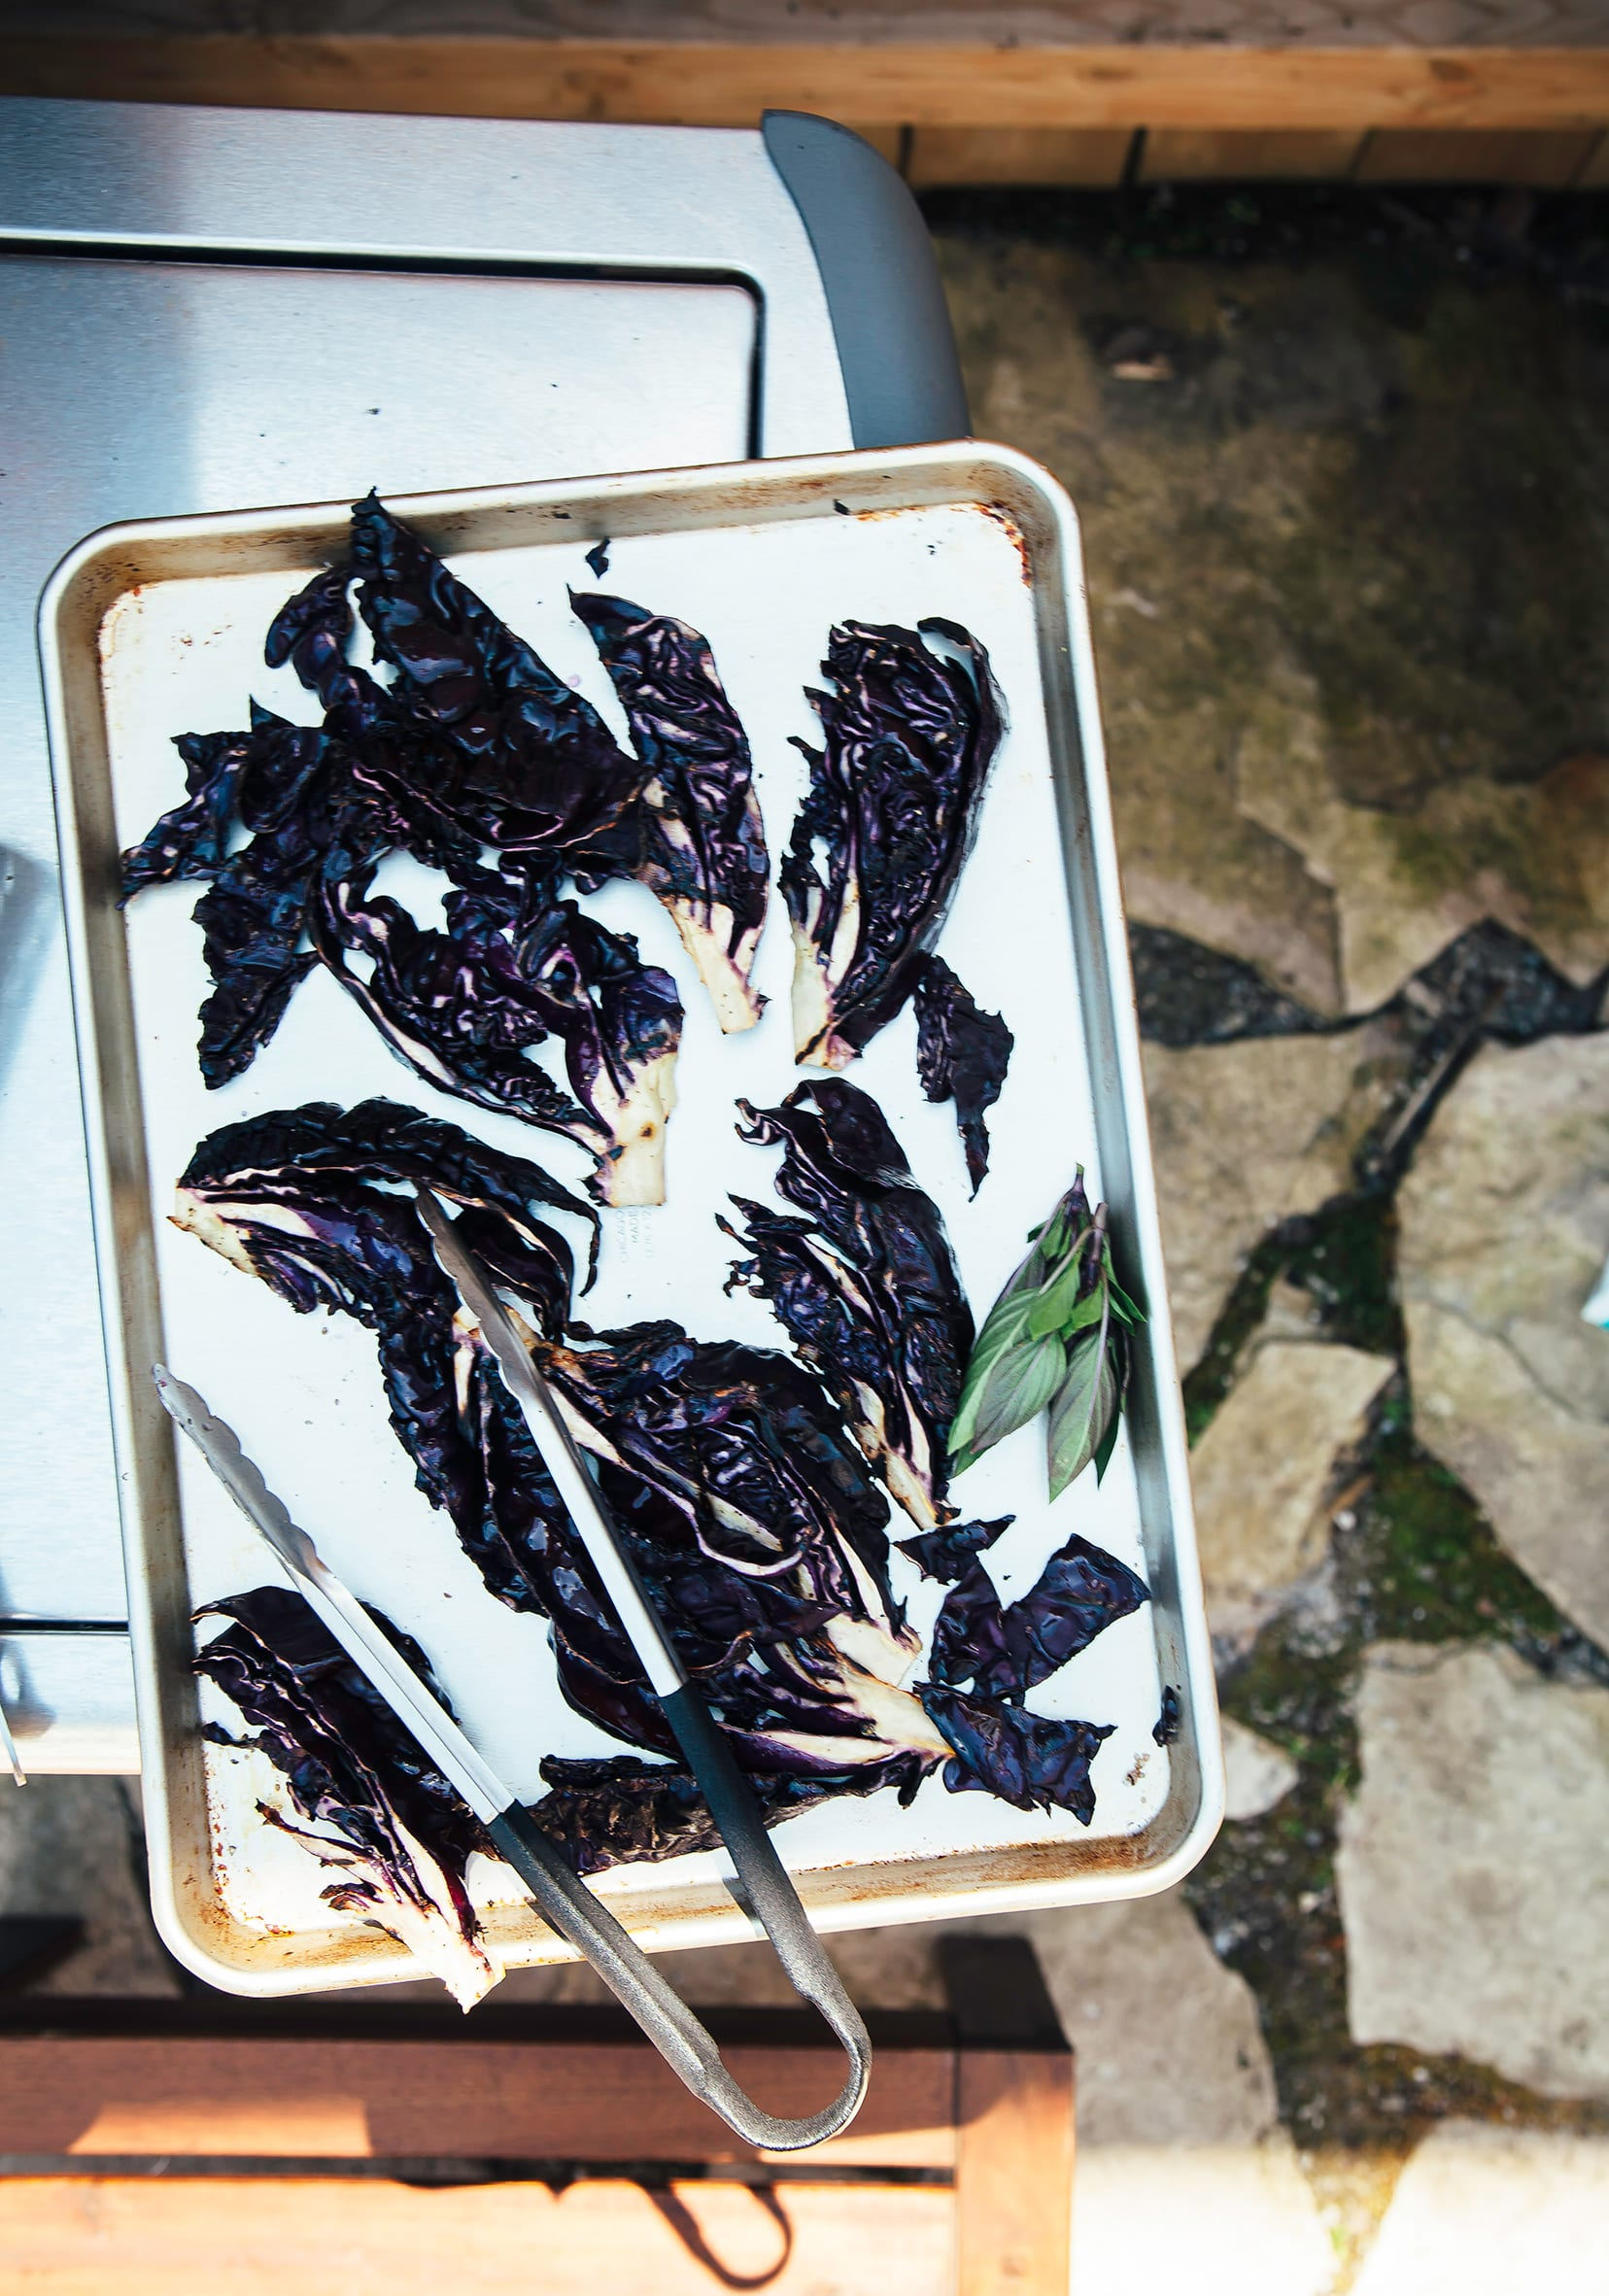 An overhead shot of grilled purple cabbage wedges on a baking sheet, outdoors.